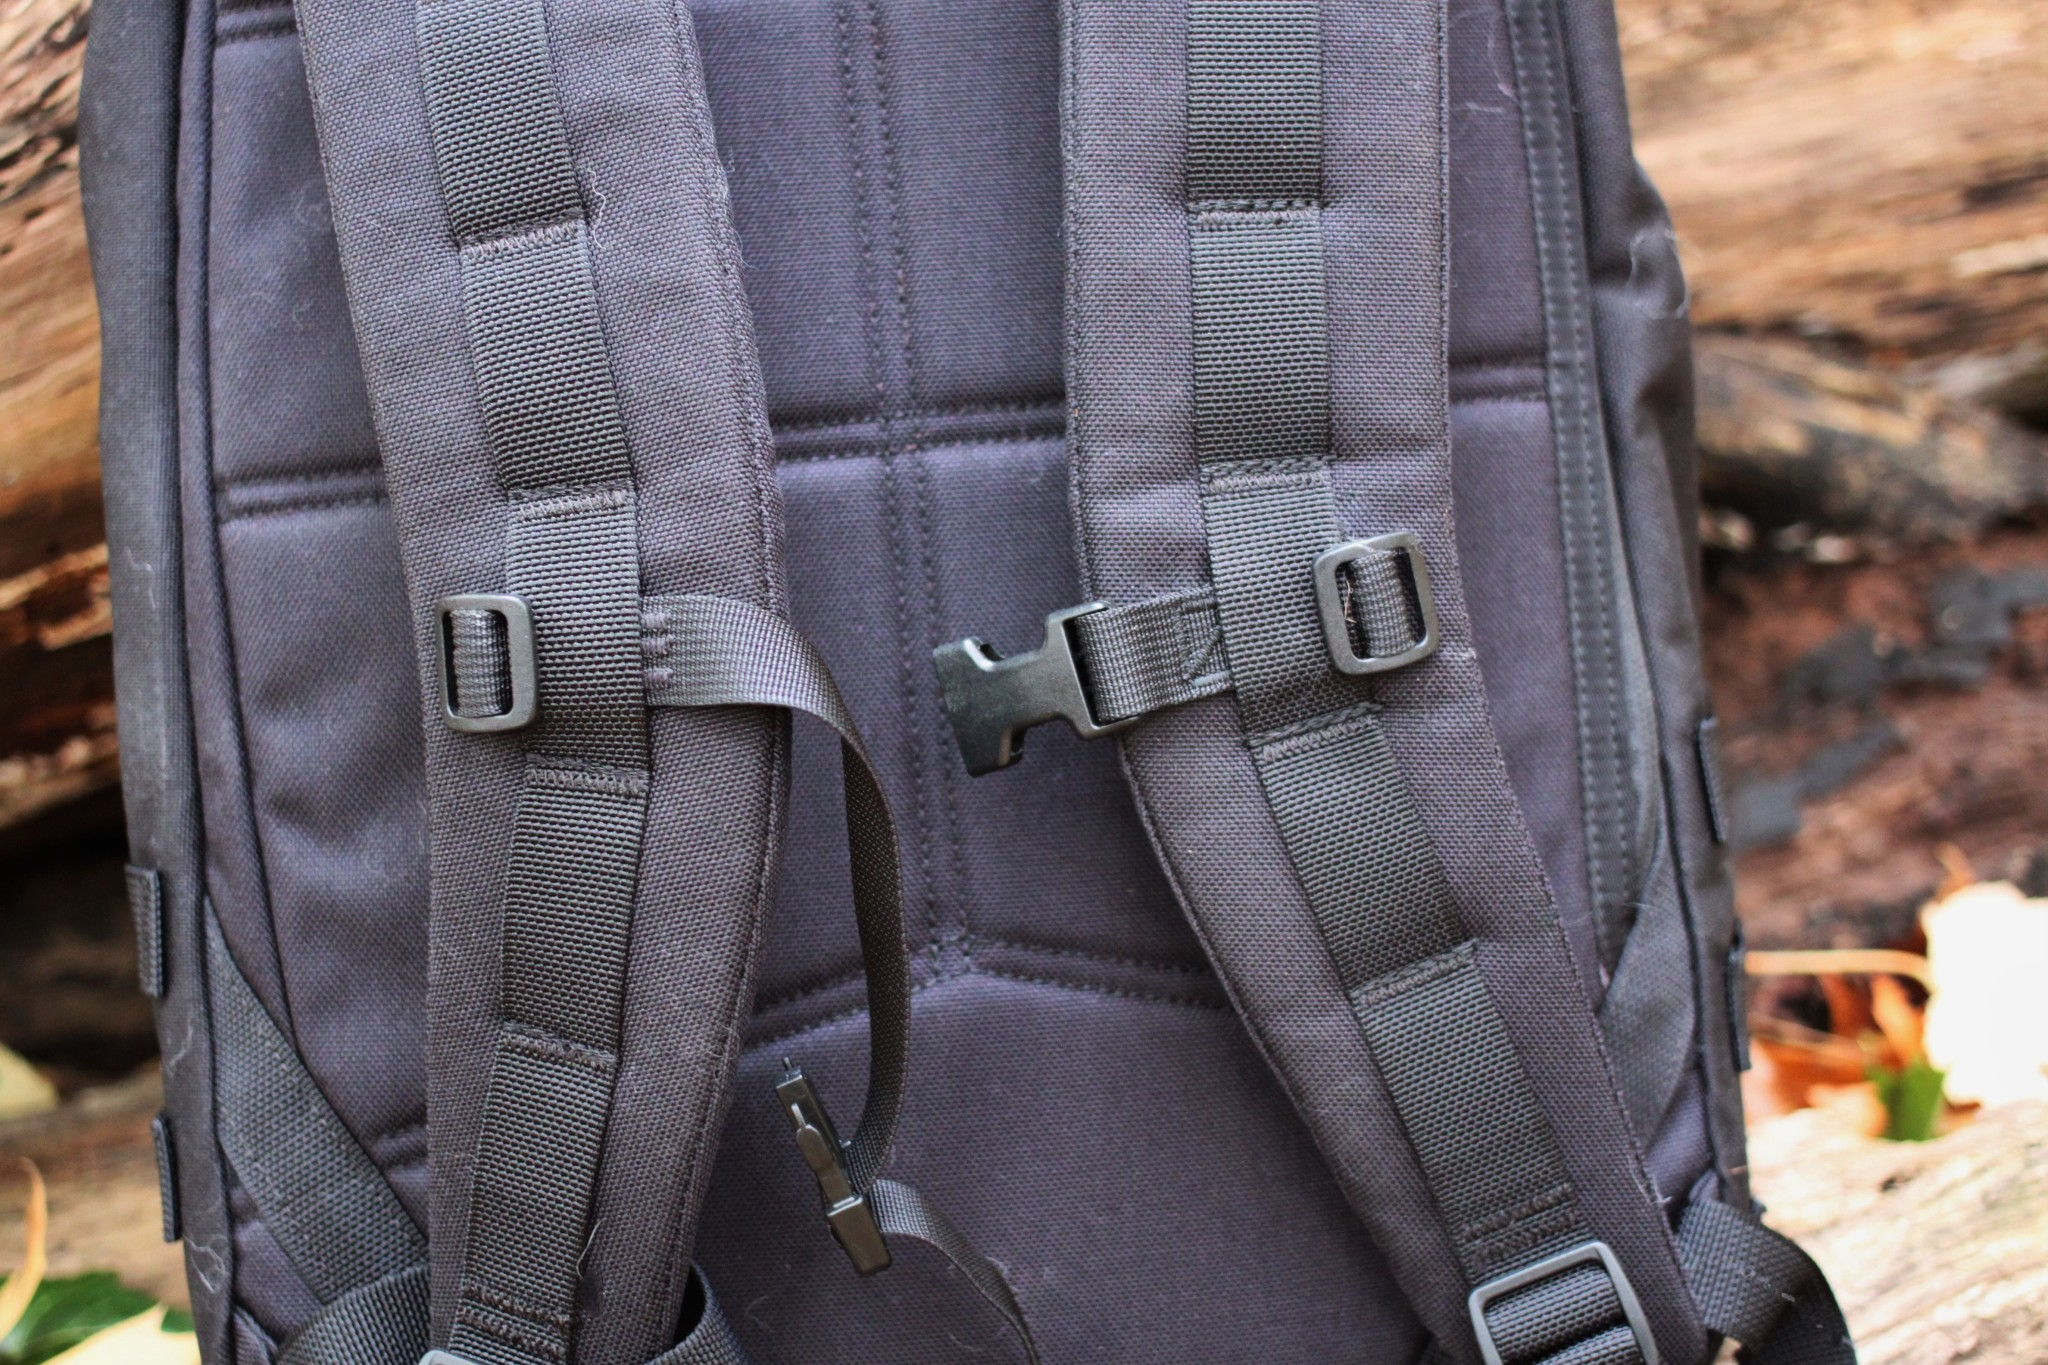 goruck gr1 review no sternum strap